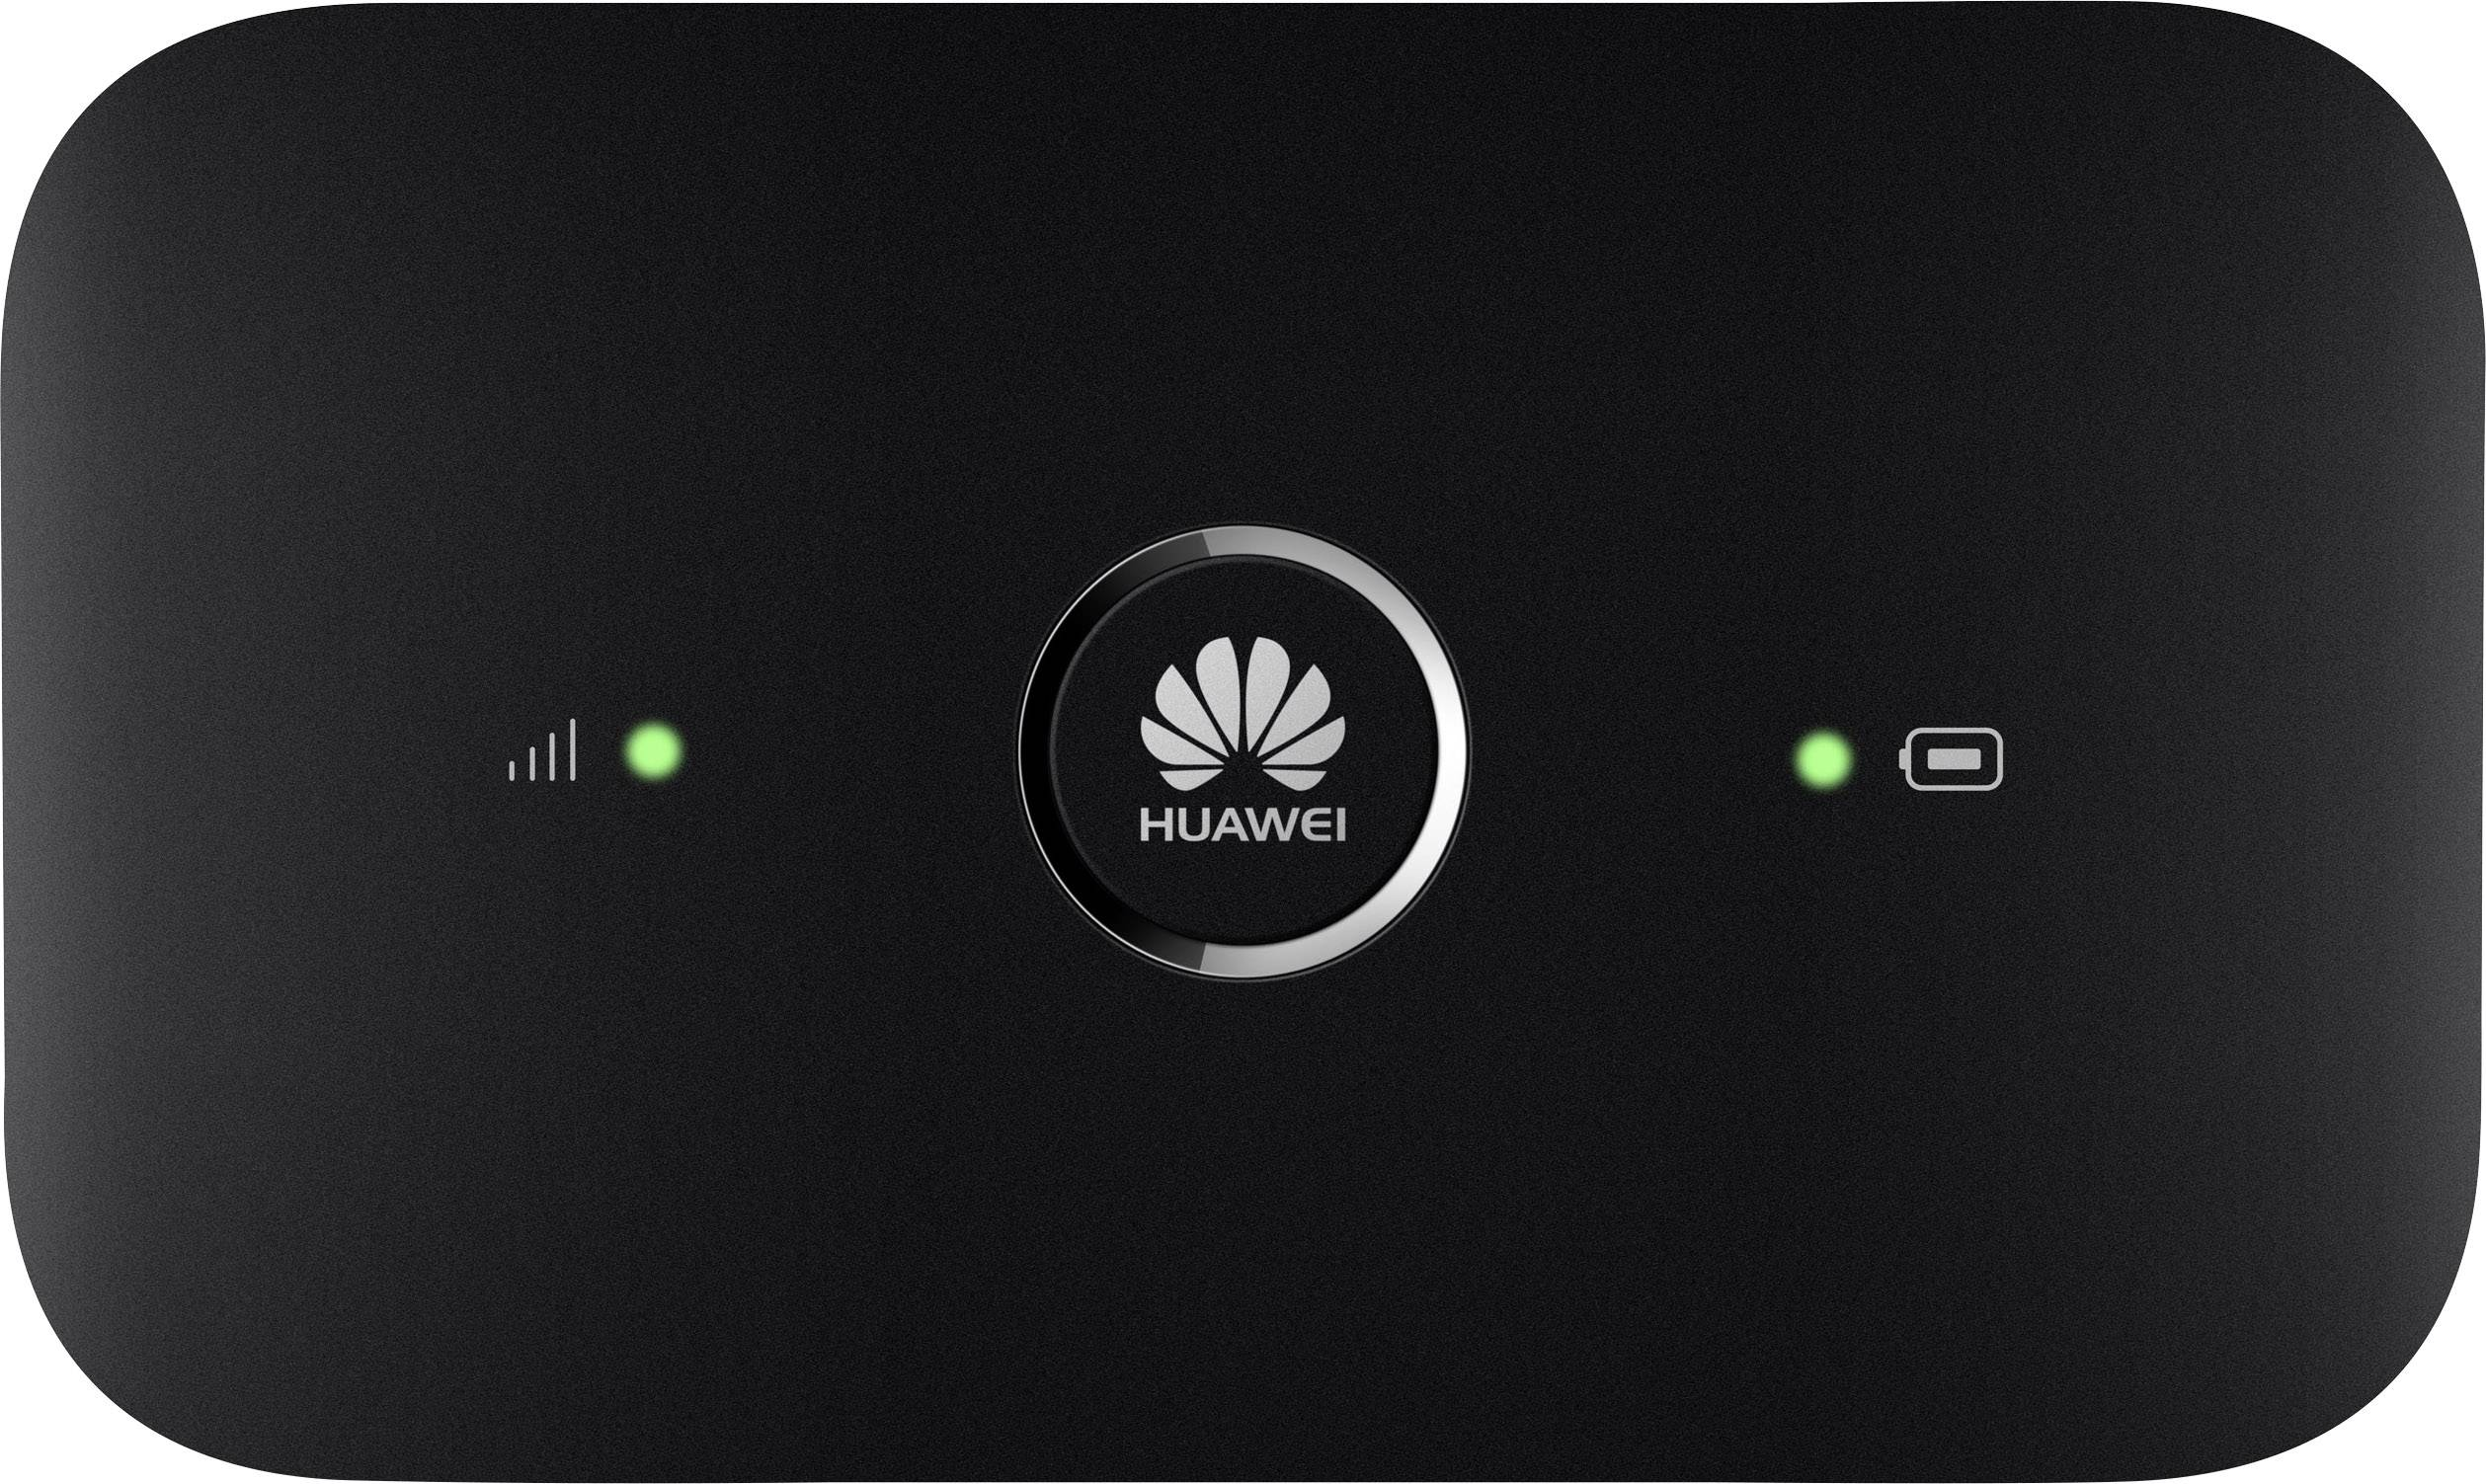 HUAWEI E5573CS-322 4G Wi-Fi mobile hotspot up to 10 devices 150 Mbps